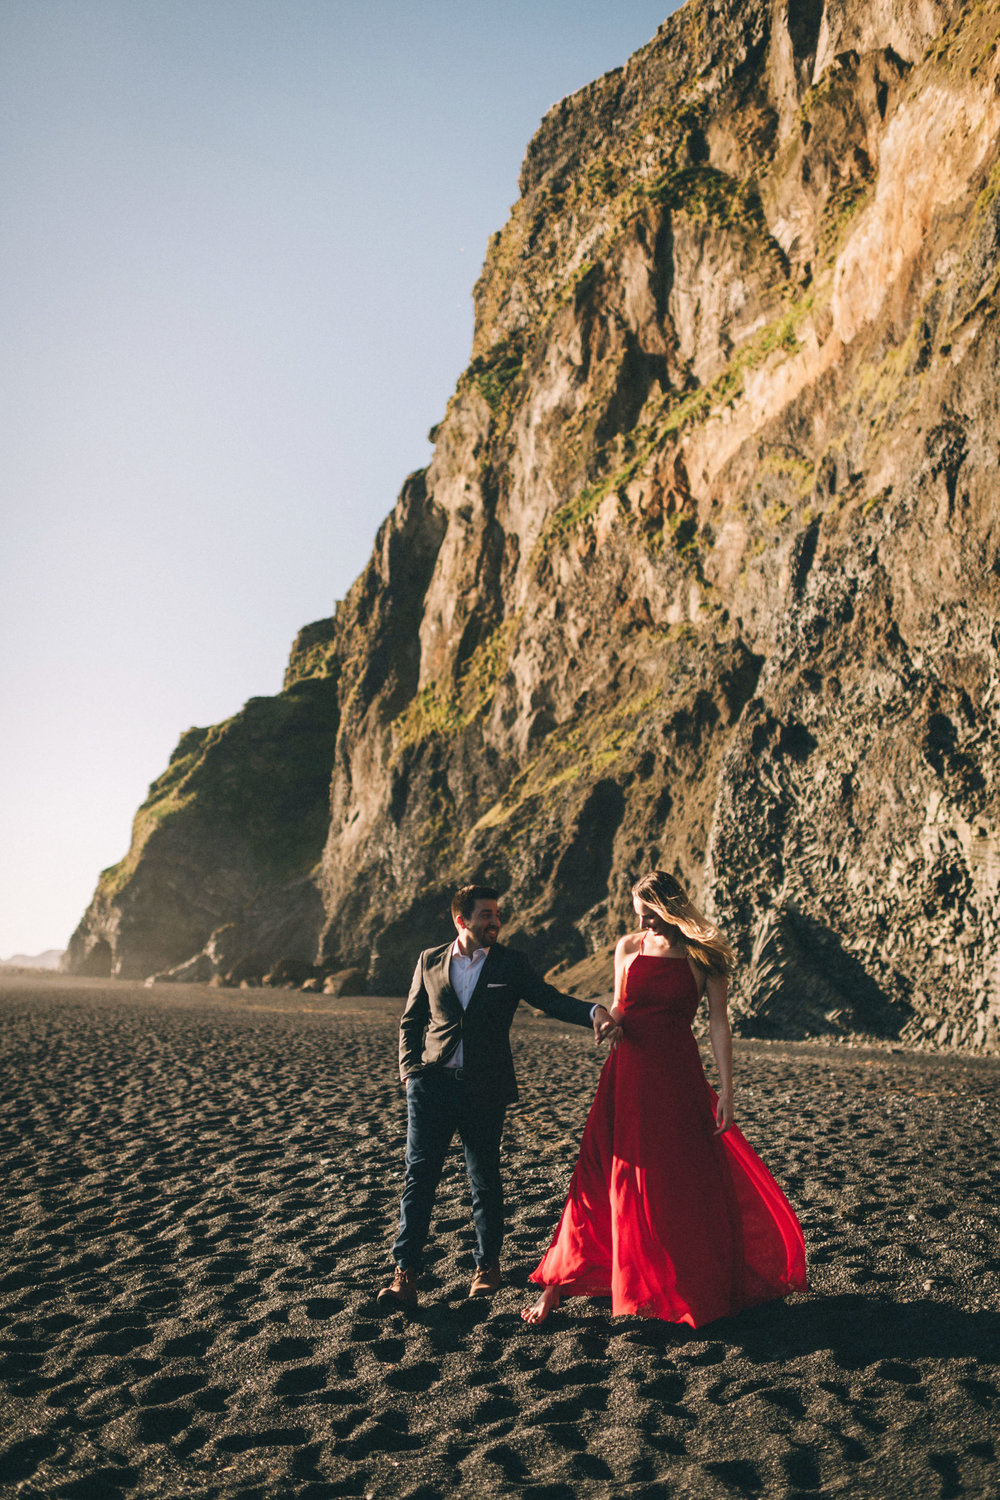 Sarah-Katherine-Davis-Photography-Iceland-Adventure-Elopement-Photographer-Louisville-Kentucky-Wedding-Photographer-Travel-Vik-Beach-Engagement-Session-Red-Dress-Reynisfjara-140edit.jpg